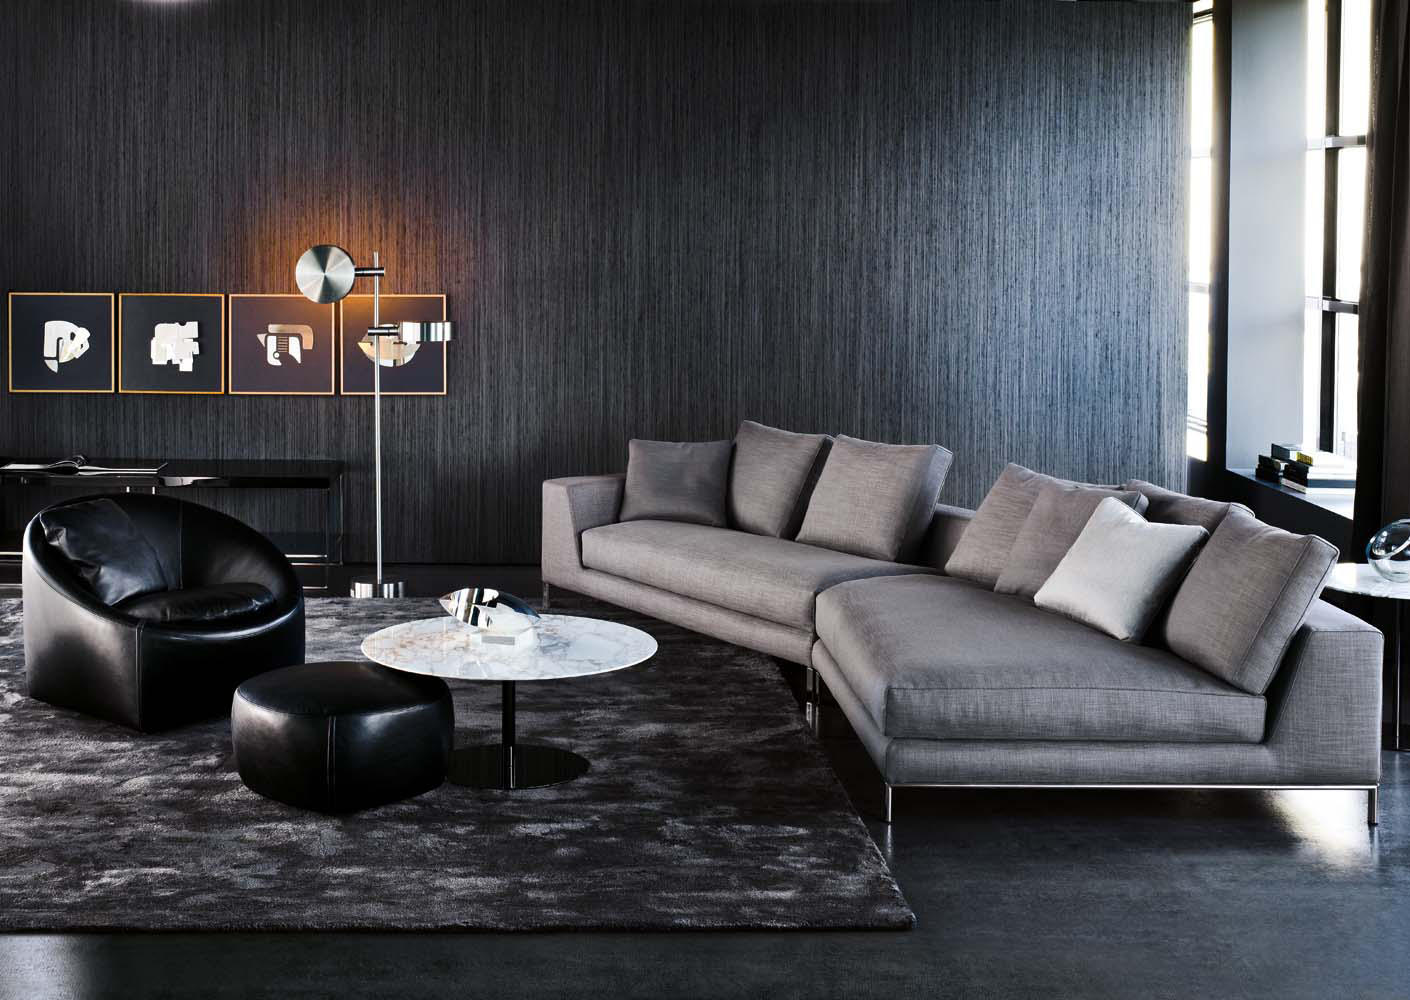 Hamilton Islands By Minotti ...